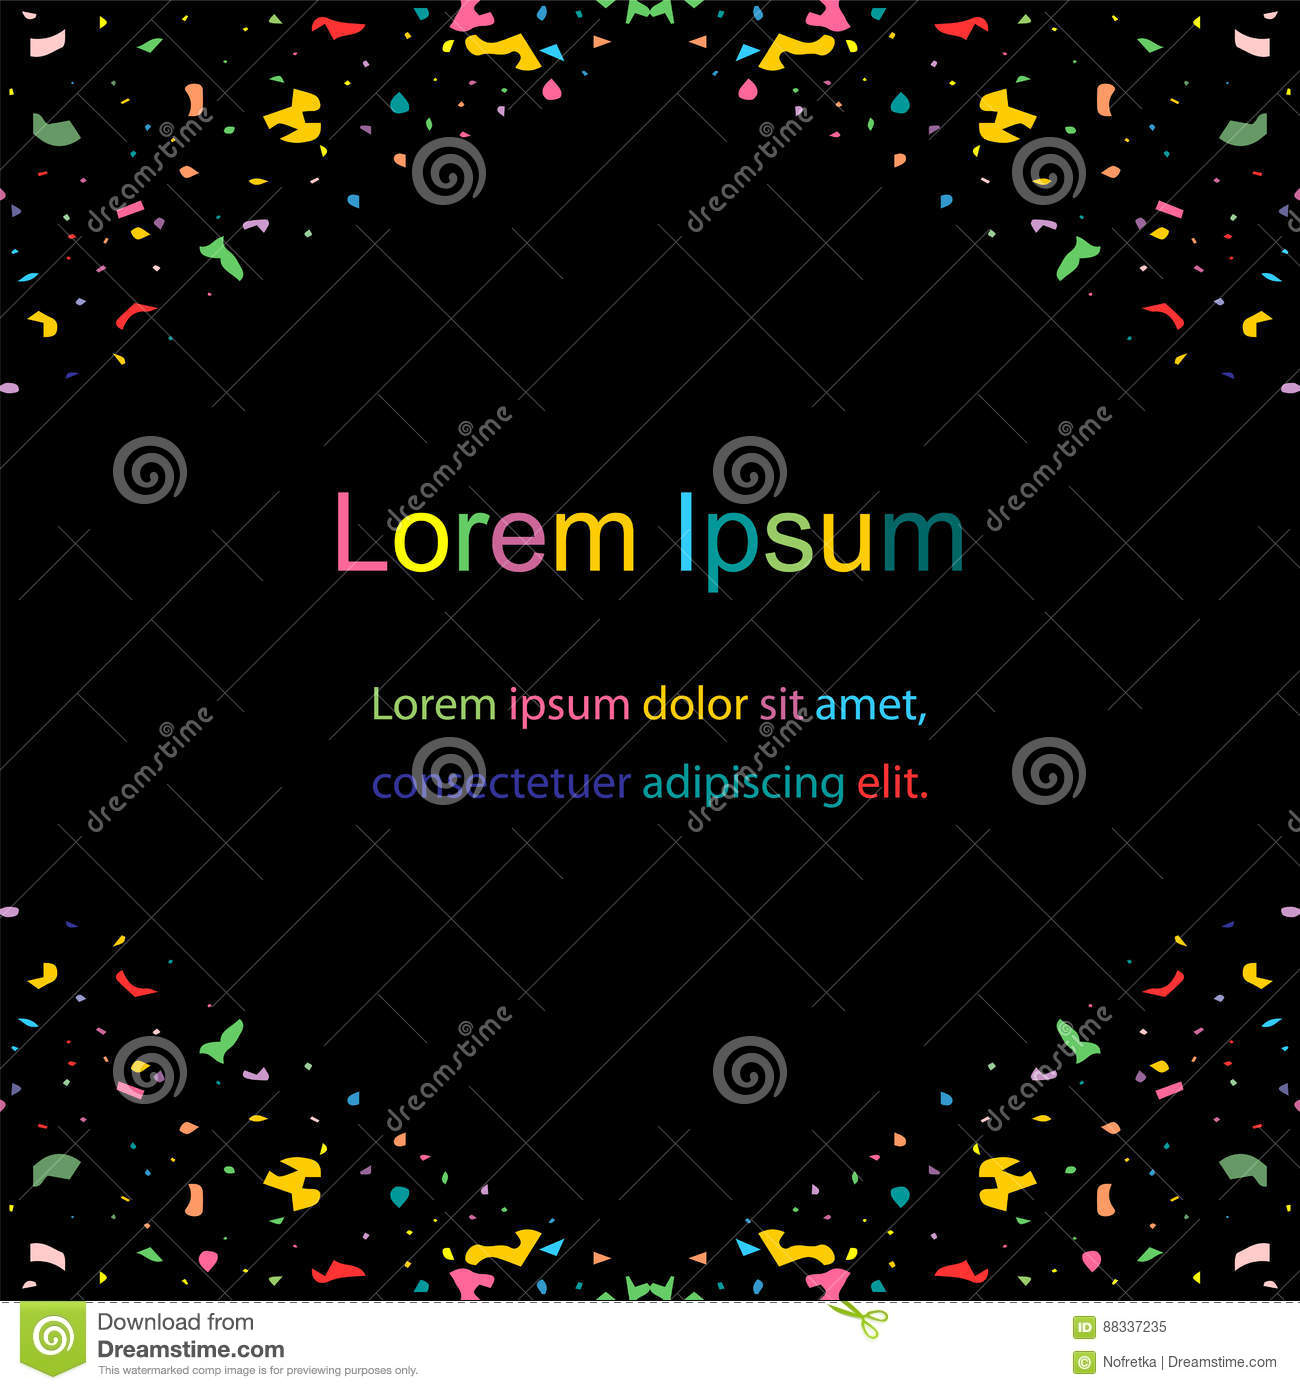 Colorful Confetti Decorate Corners On Black Template For Fliers - Templates for fliers